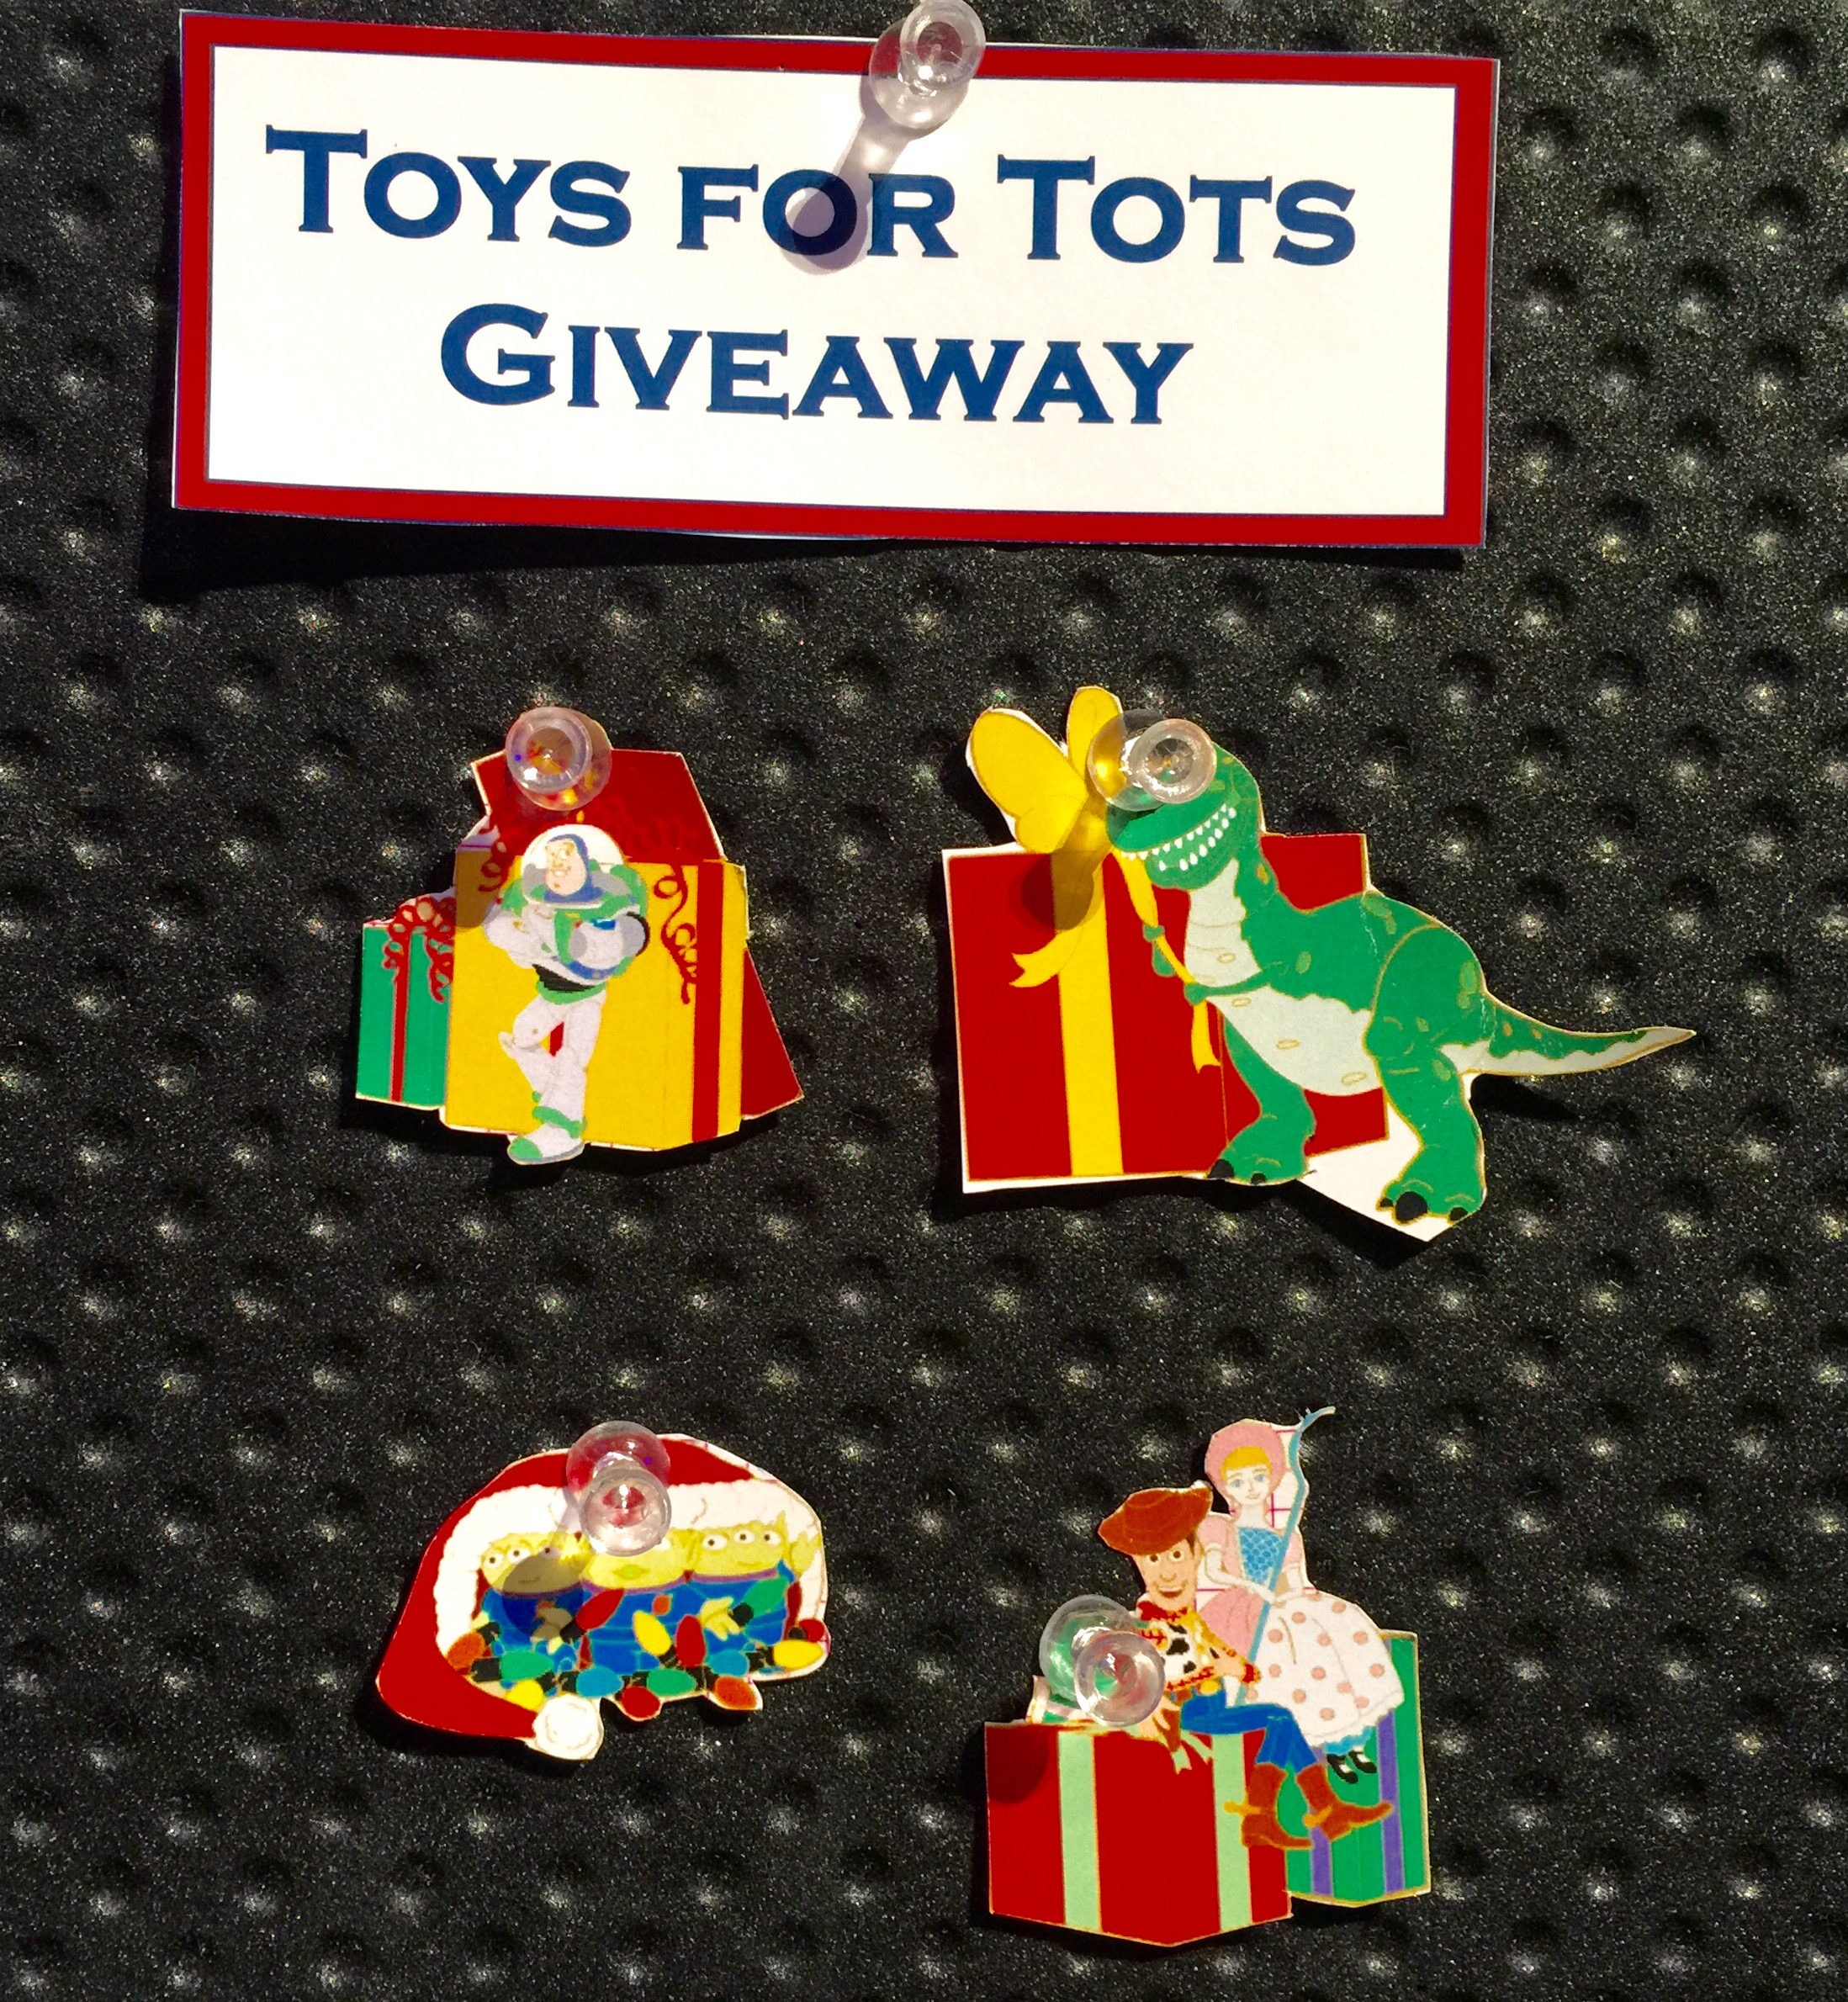 Disney Toys For Tots : Toys for tots disney